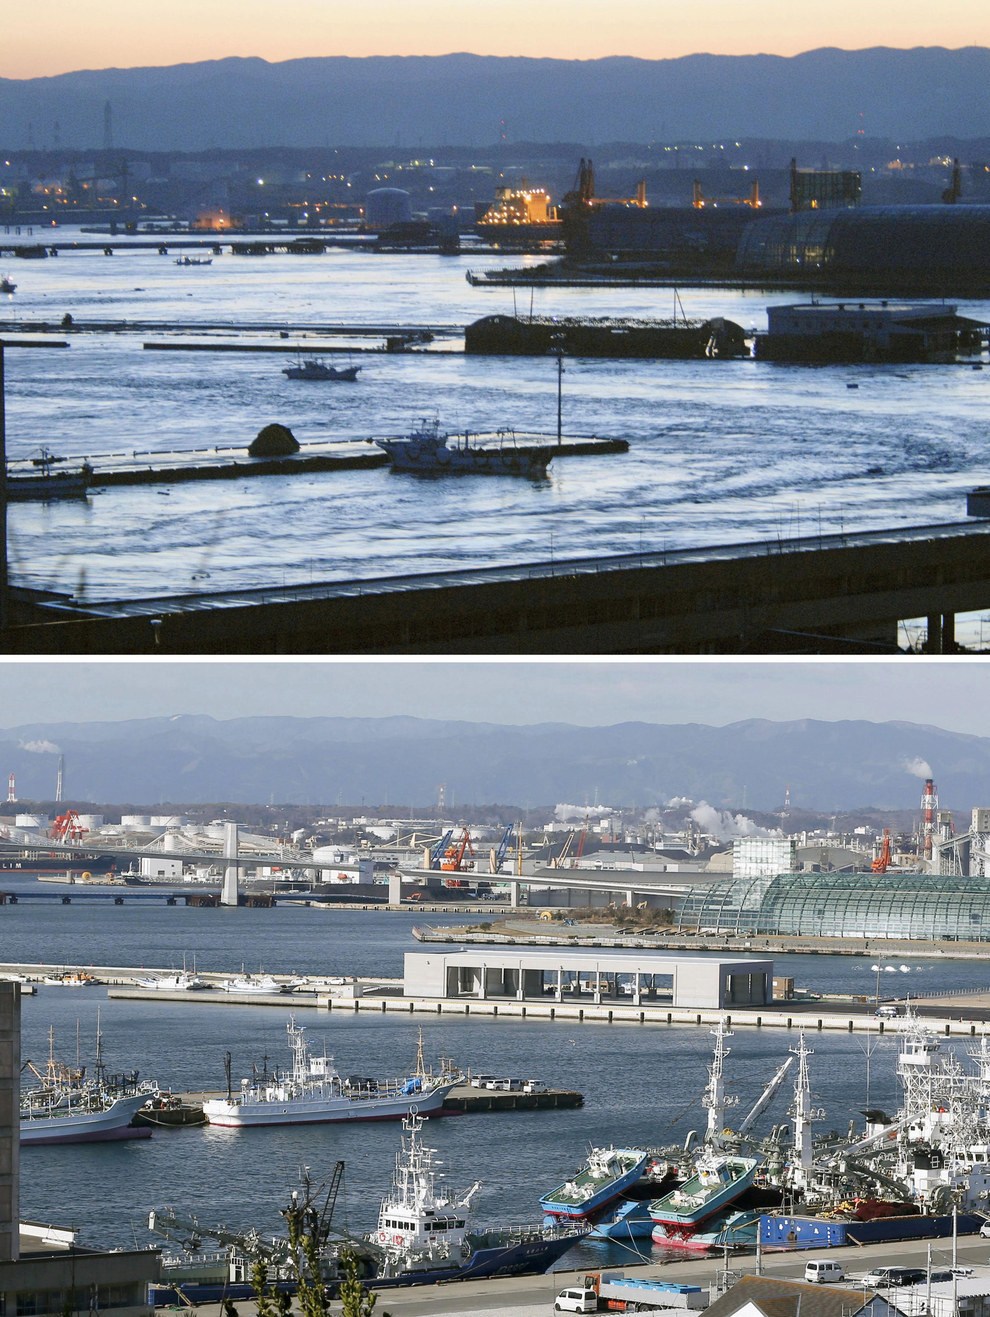 Here's a general view of Onahama port in Fukushima prefecture: March 11, 2011, vs. February 28, 2015.